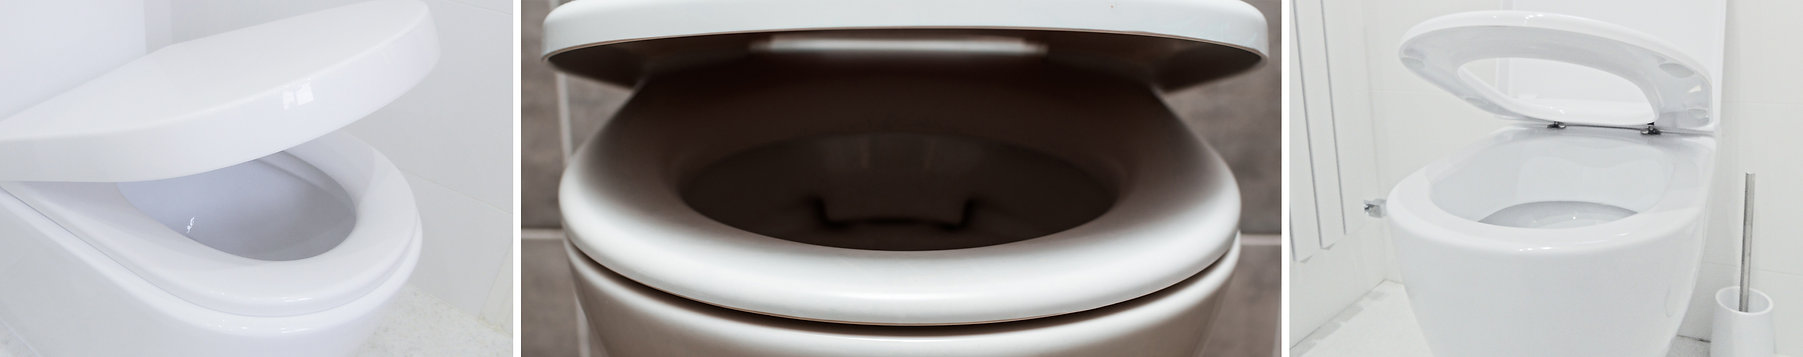 products-wc-seats-master4650x920.jpg